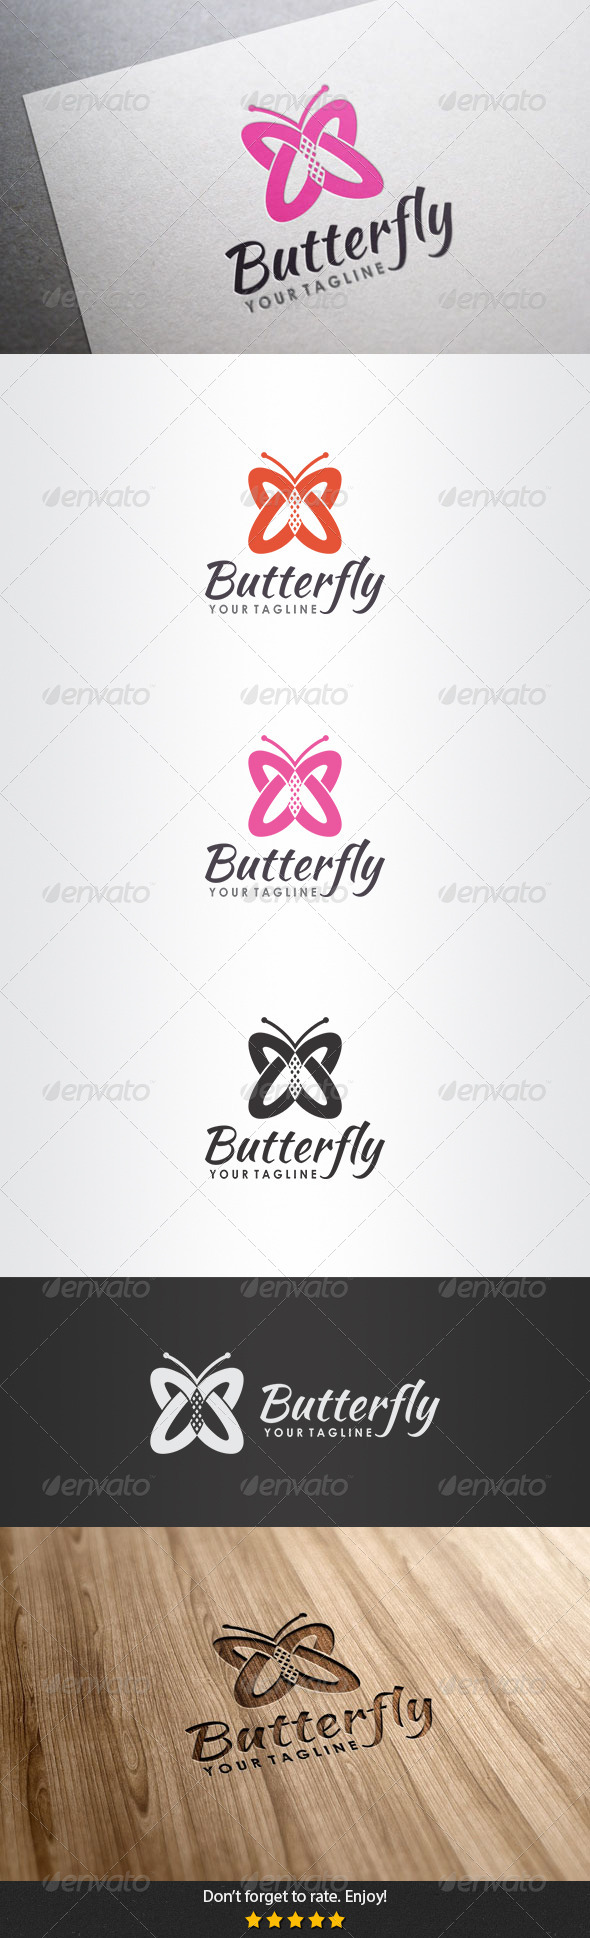 GraphicRiver Butterfly Logo 5506862